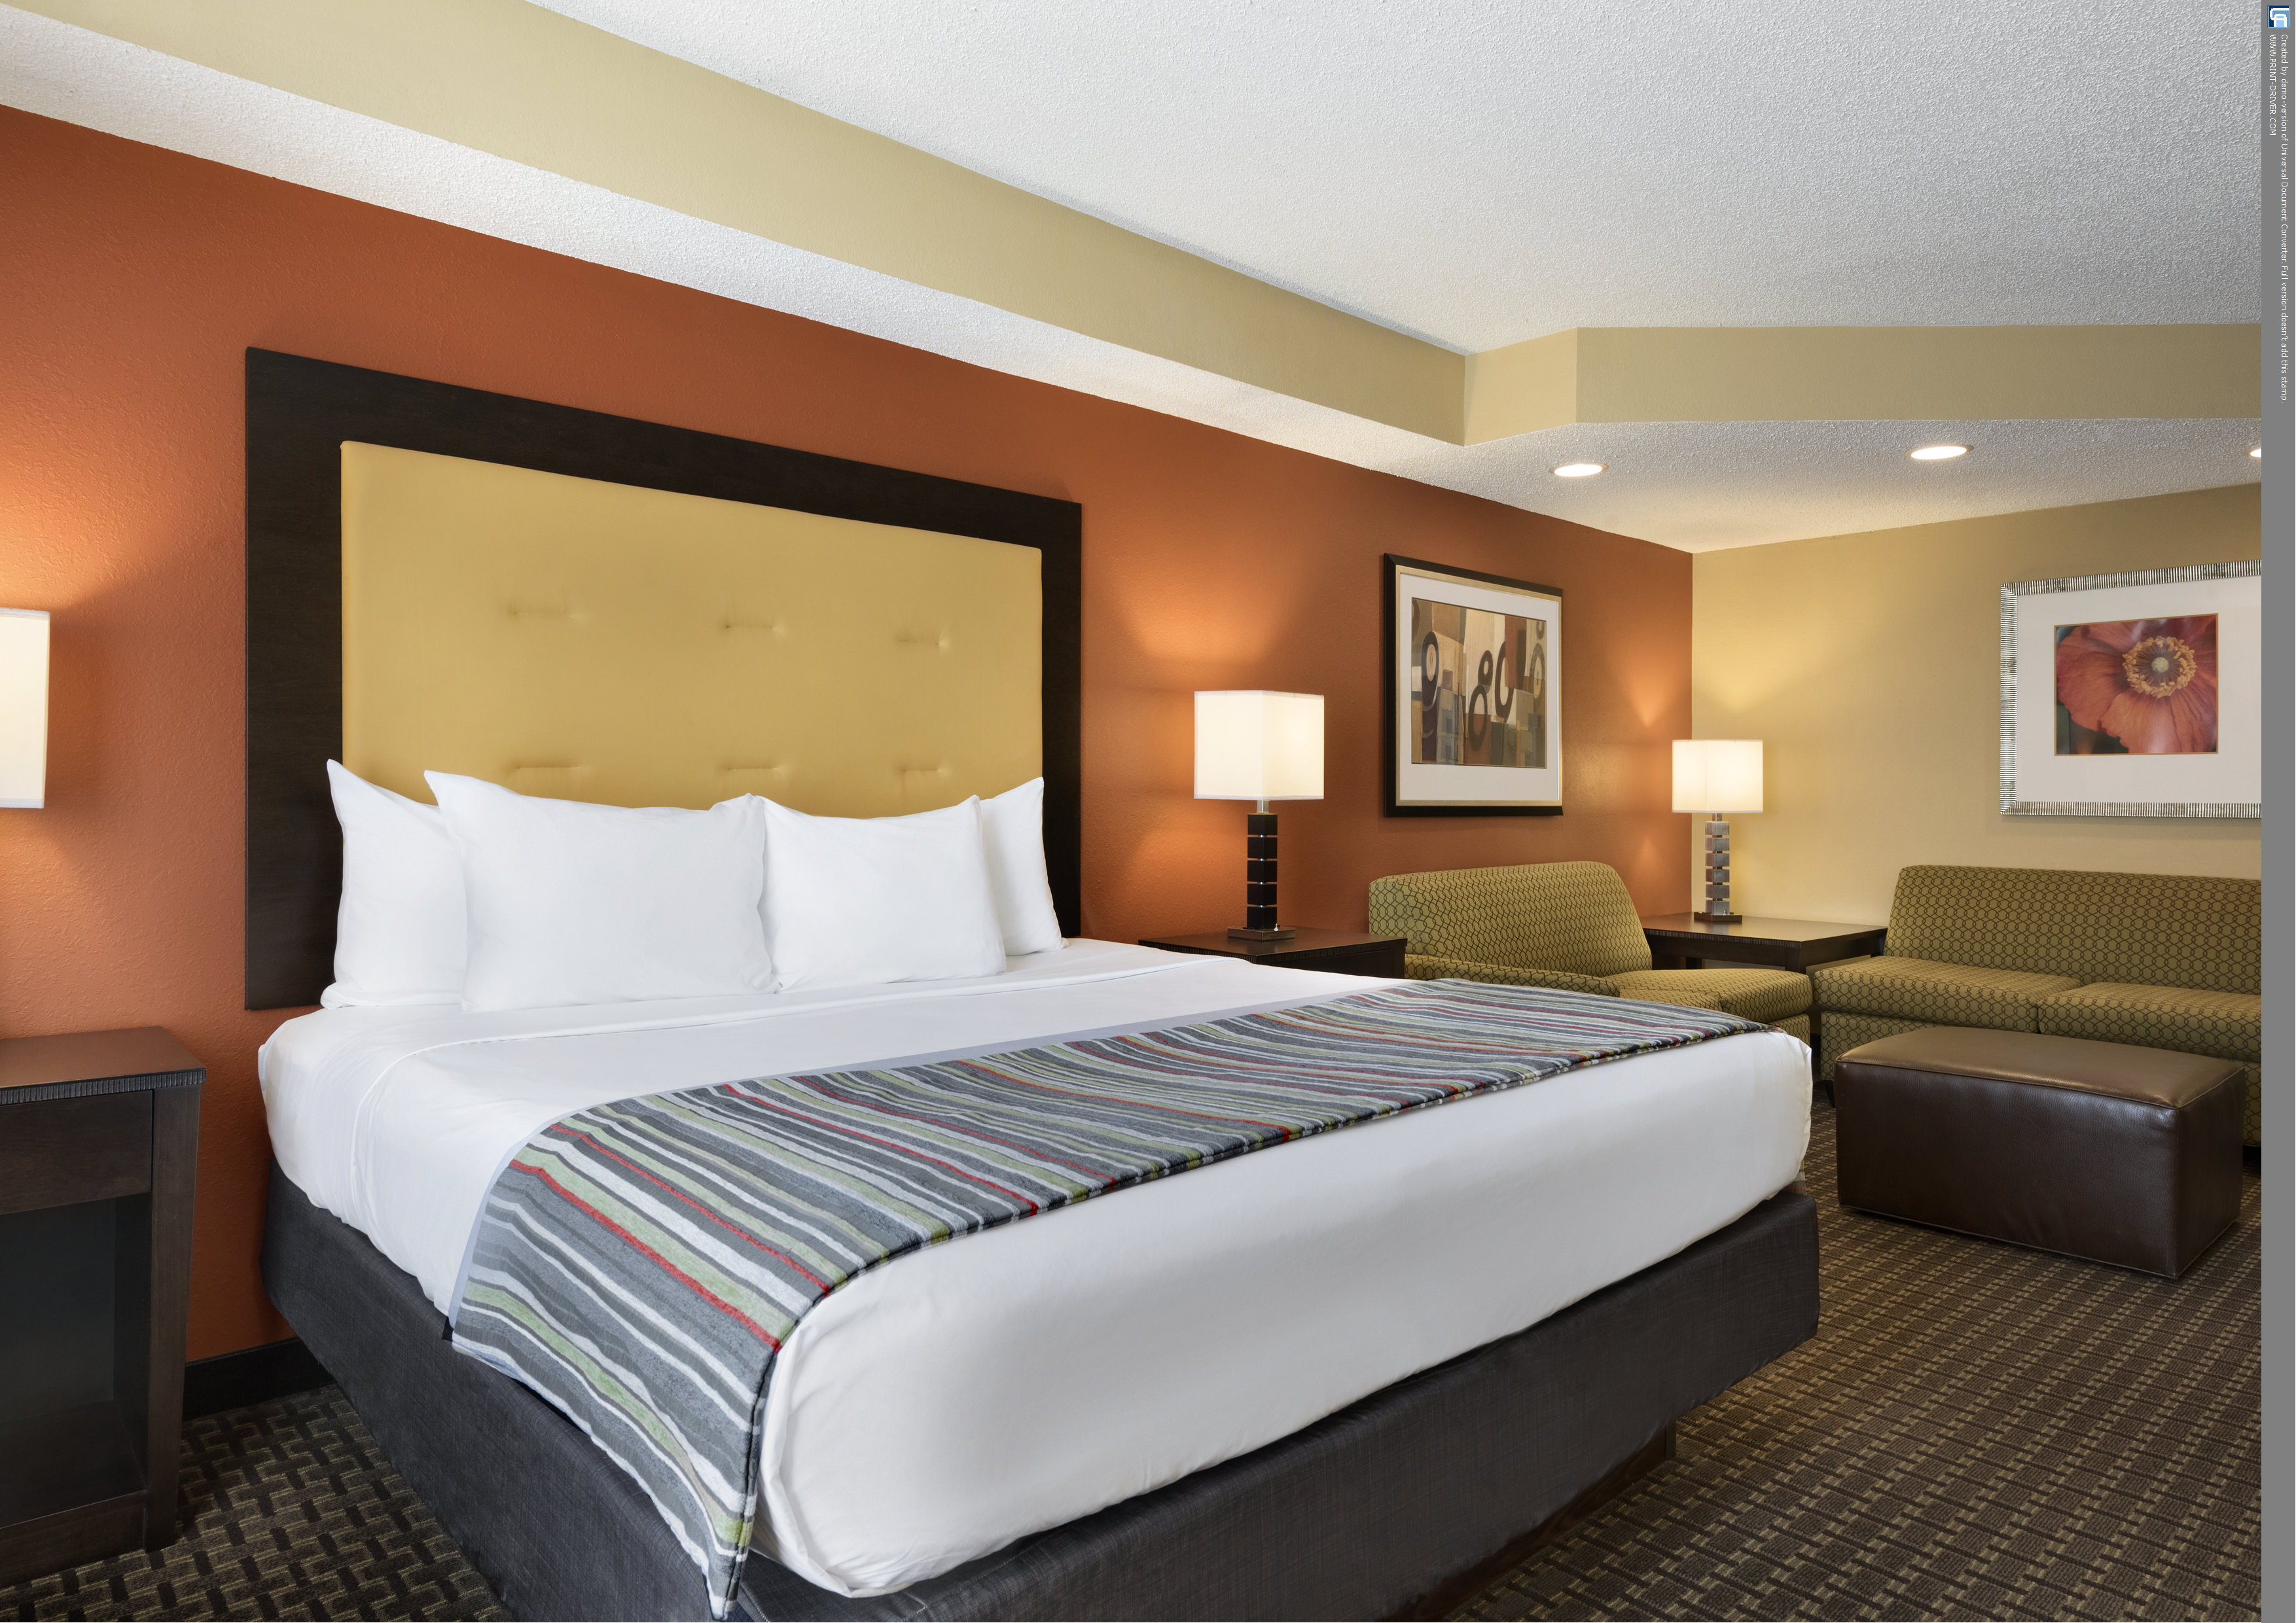 Country Inn & Suites by Radisson, Evansville, IN image 1